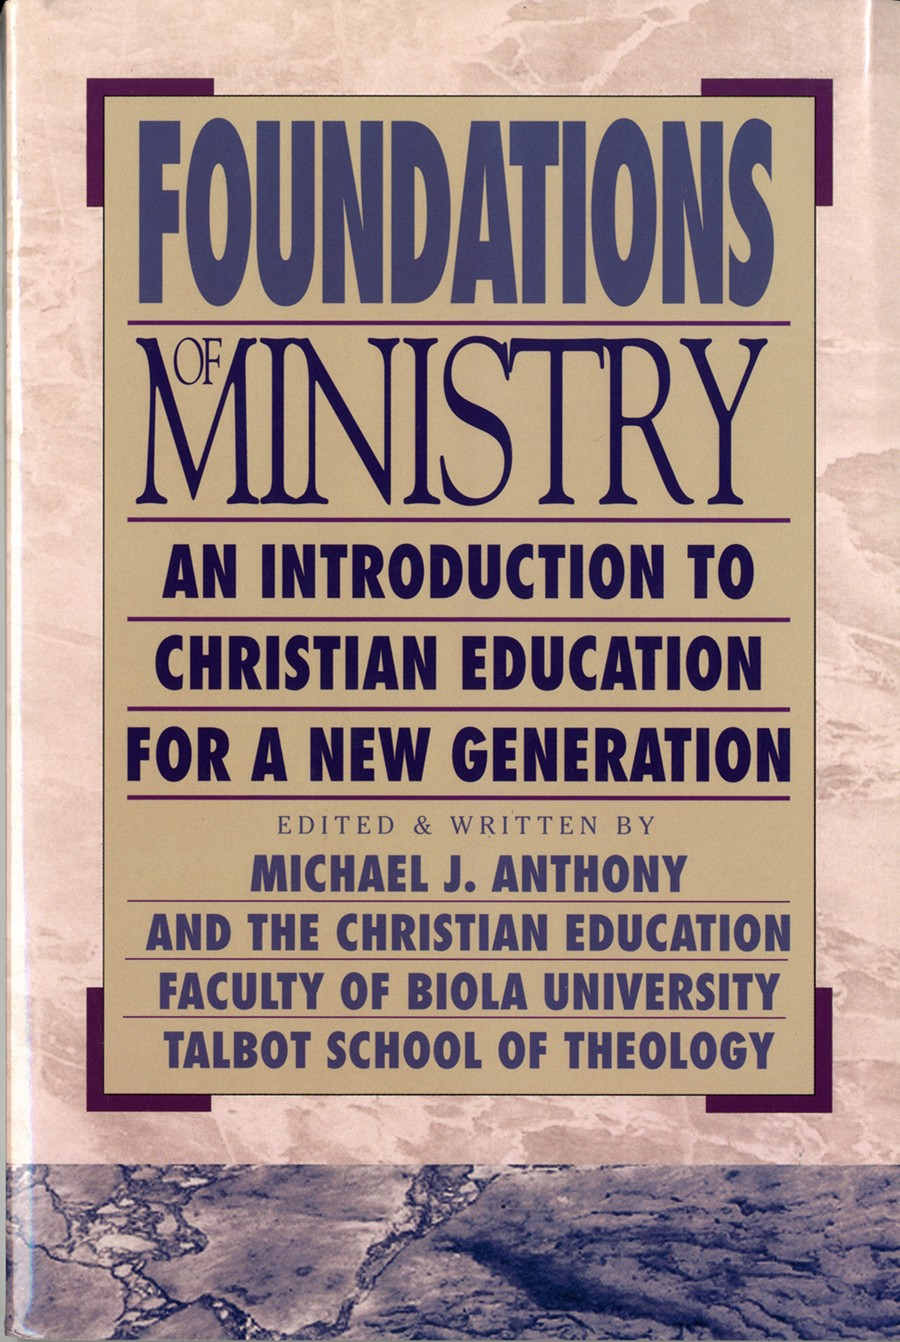 Foundations for Ministry: An Introduction to Christian Education for a New Generation